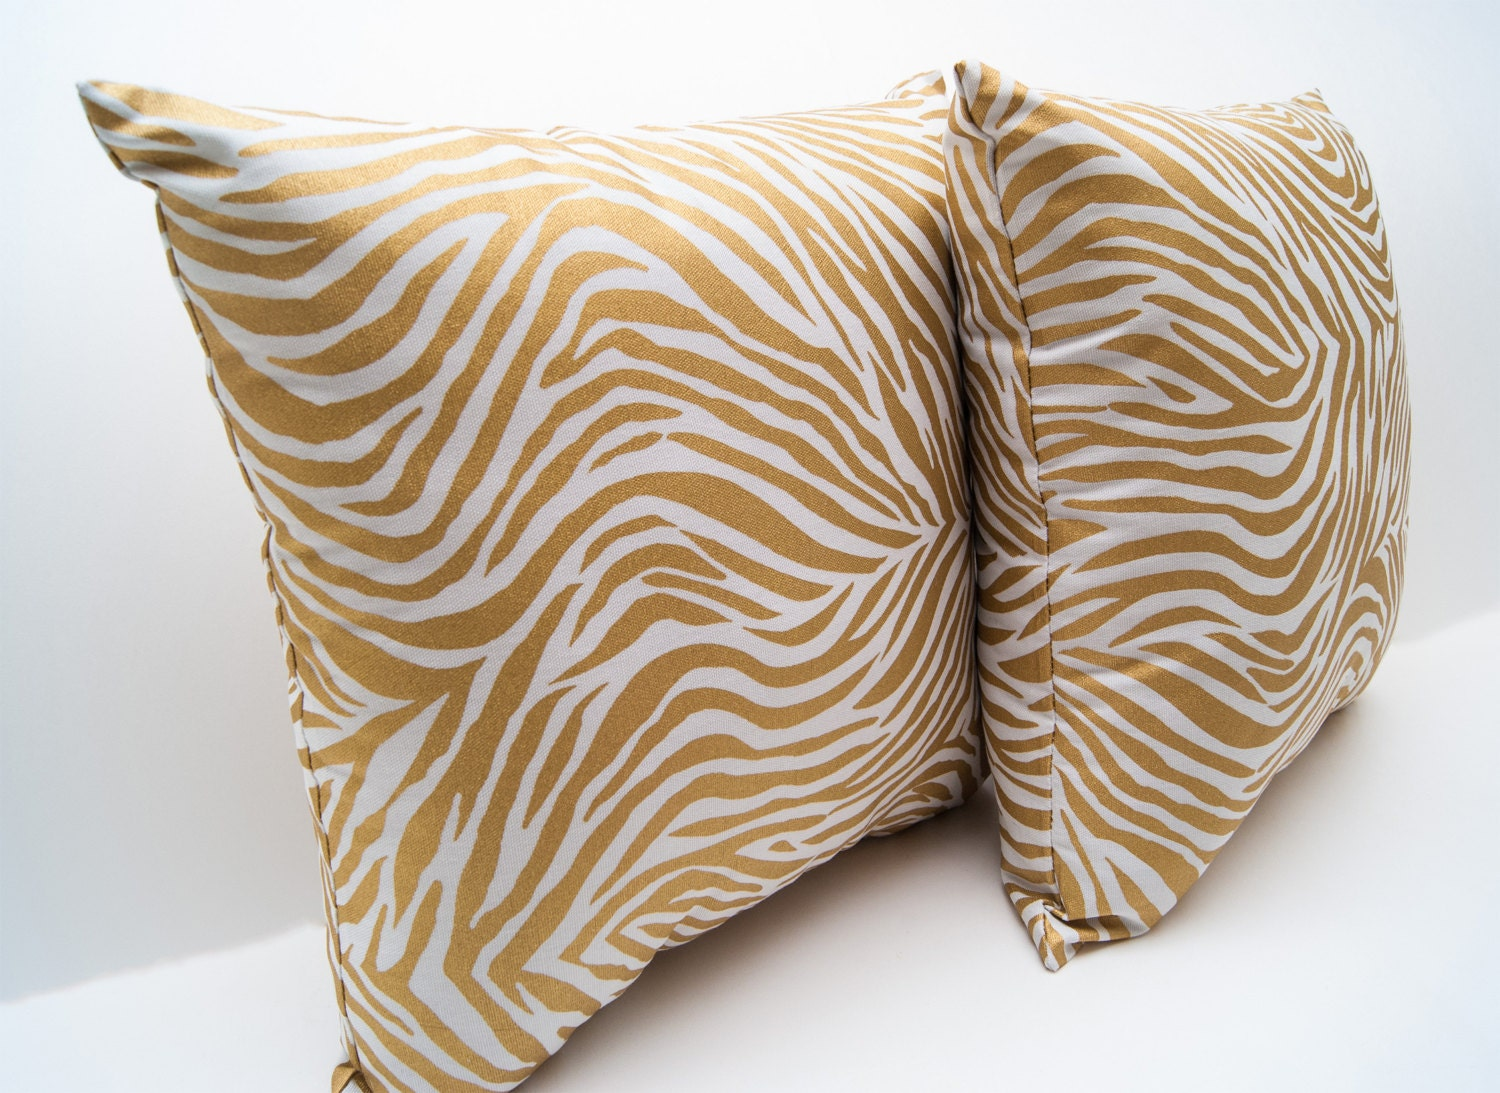 Animal Print Sofa Pillows : Throw Pillow Metallic Zebra Print Throw Pillow Accent